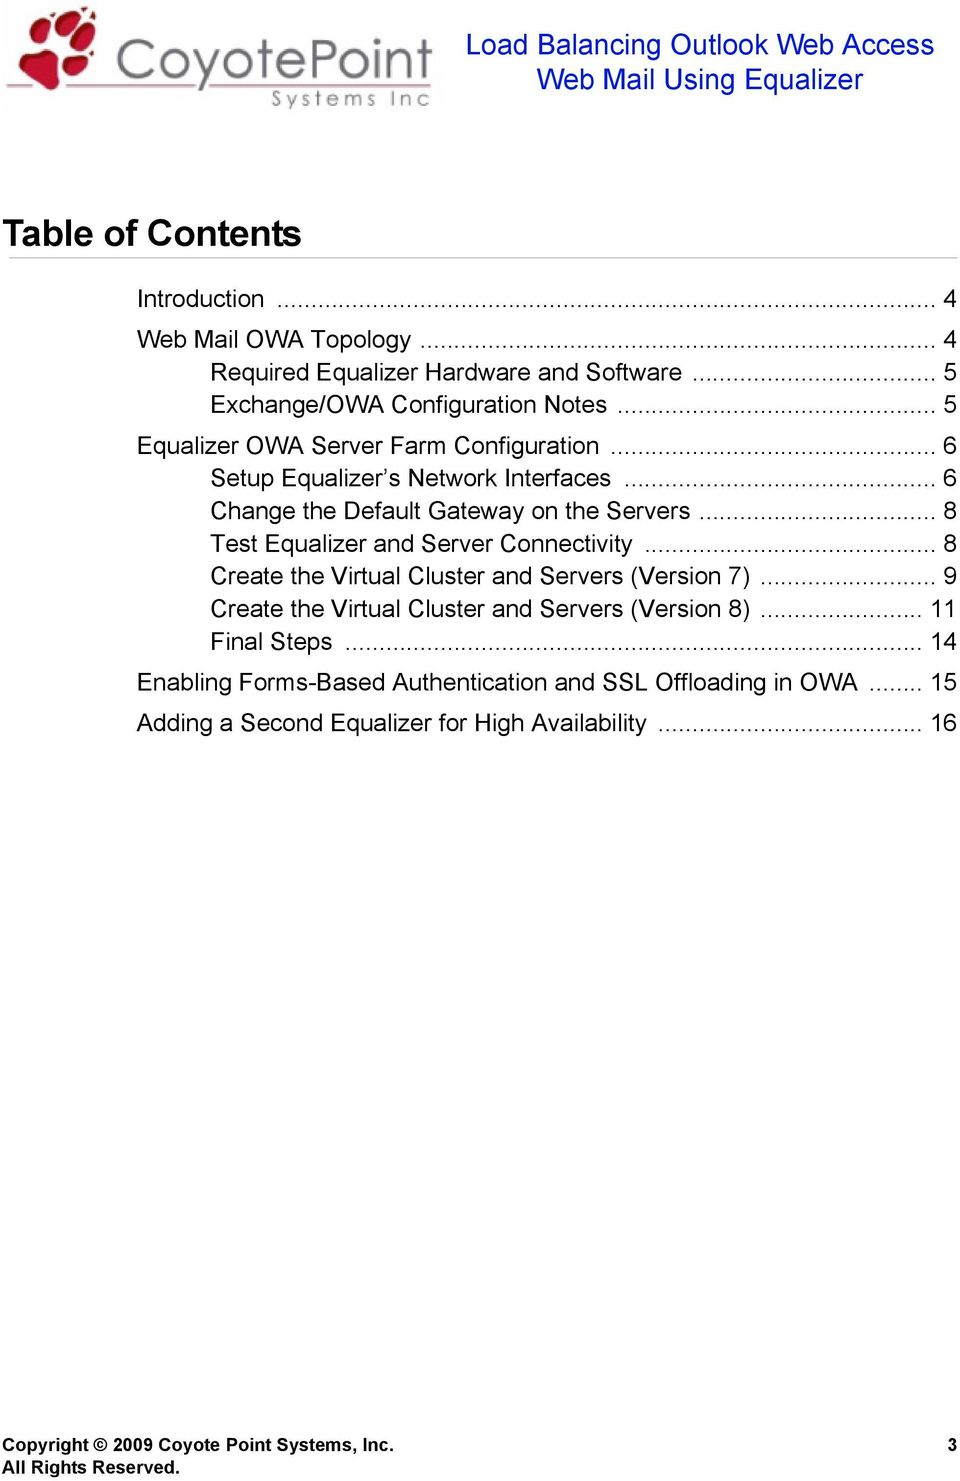 .. 8 Test Equalizer and Server Connectivity... 8 Create the Virtual Cluster and Servers (Version 7)... 9 Create the Virtual Cluster and Servers (Version 8).